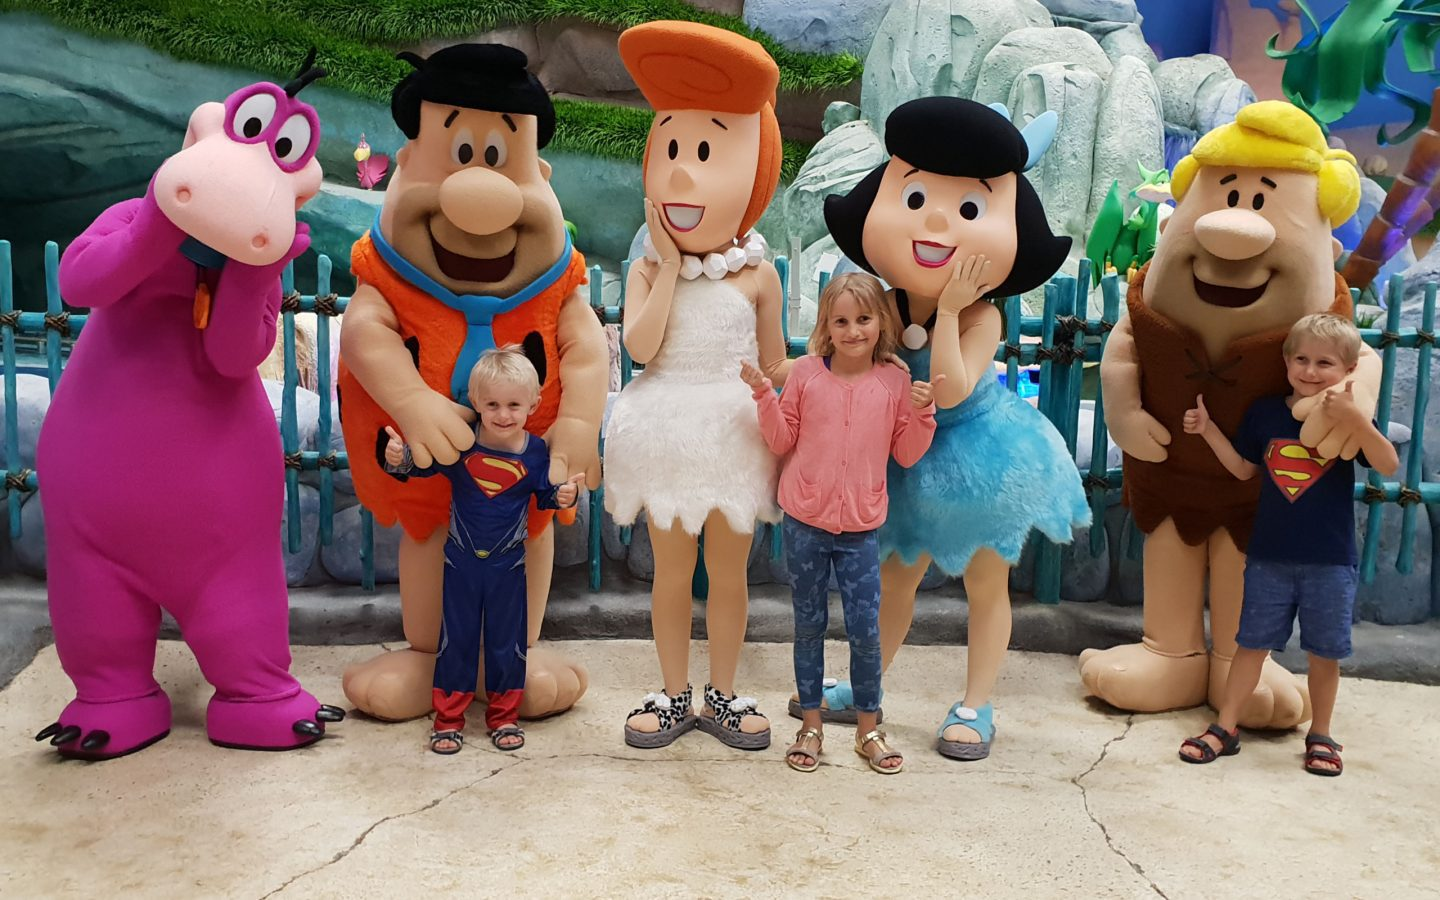 5 characters from the Flinstones pose with children